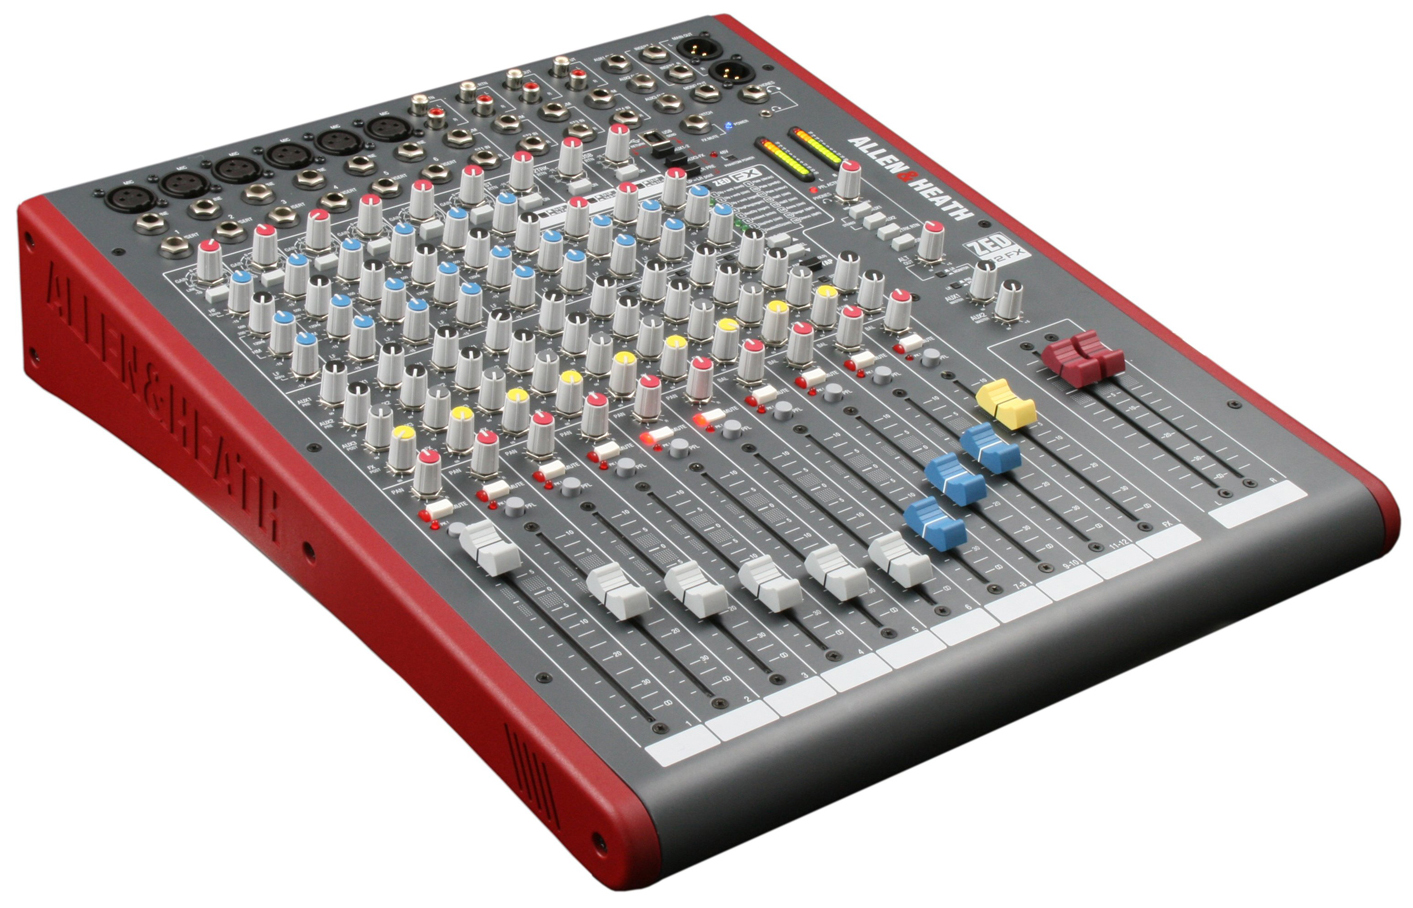 allen heath zed 12fx 12 channel mixing desk with effects astounded. Black Bedroom Furniture Sets. Home Design Ideas